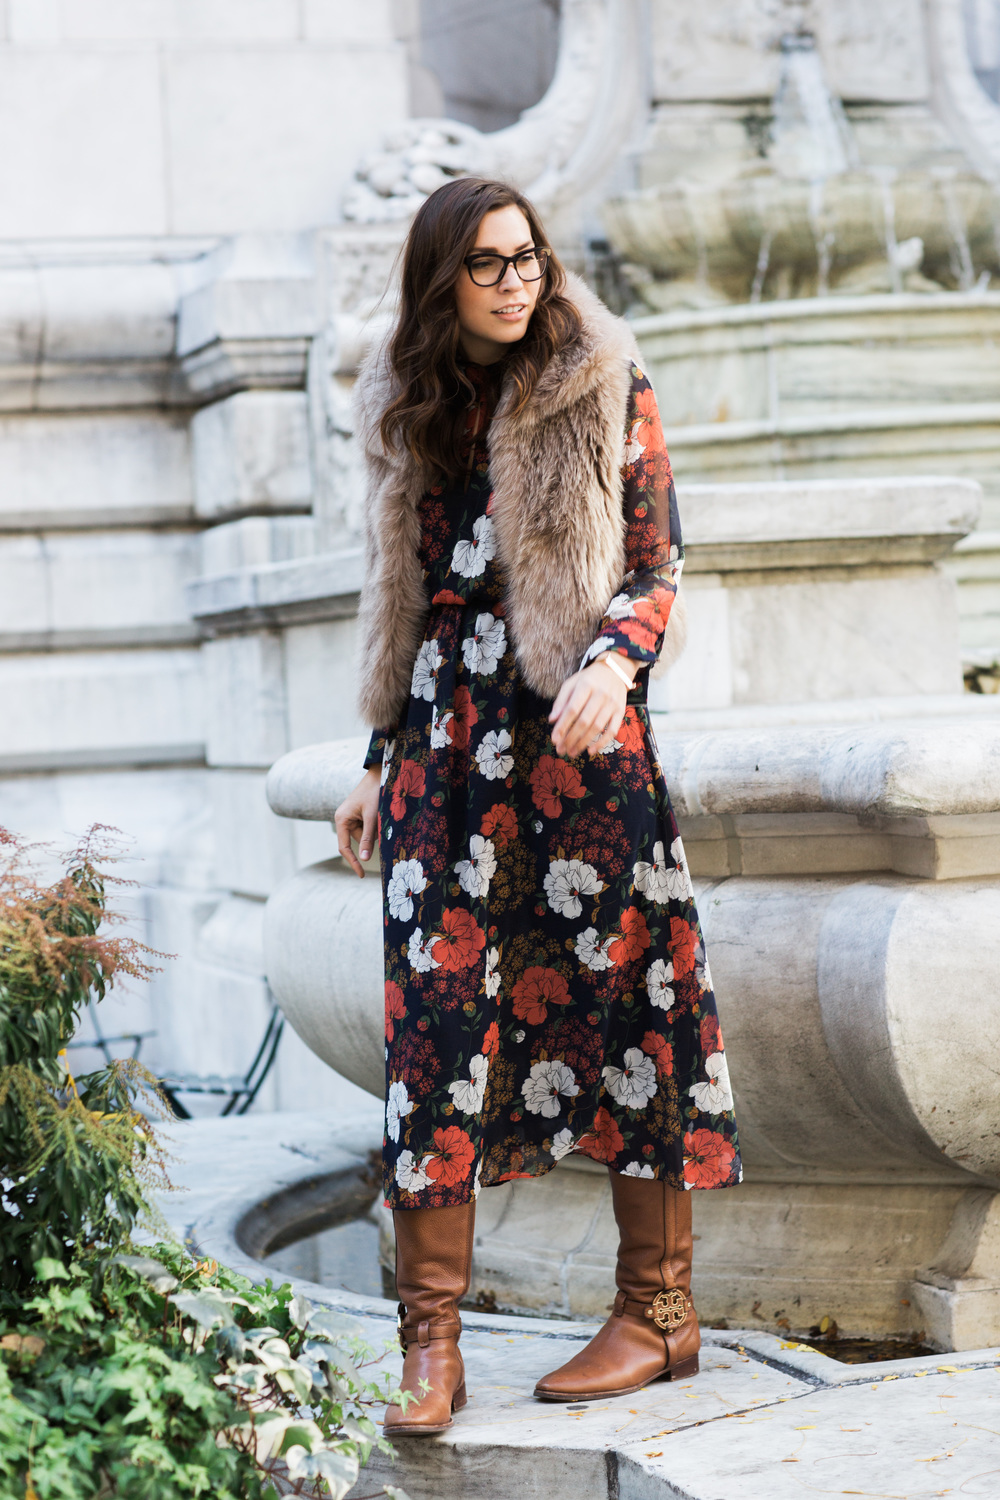 Zara Dress, Elie Tahari Vest, Tory Burch Riding Boots, Dior Glasses